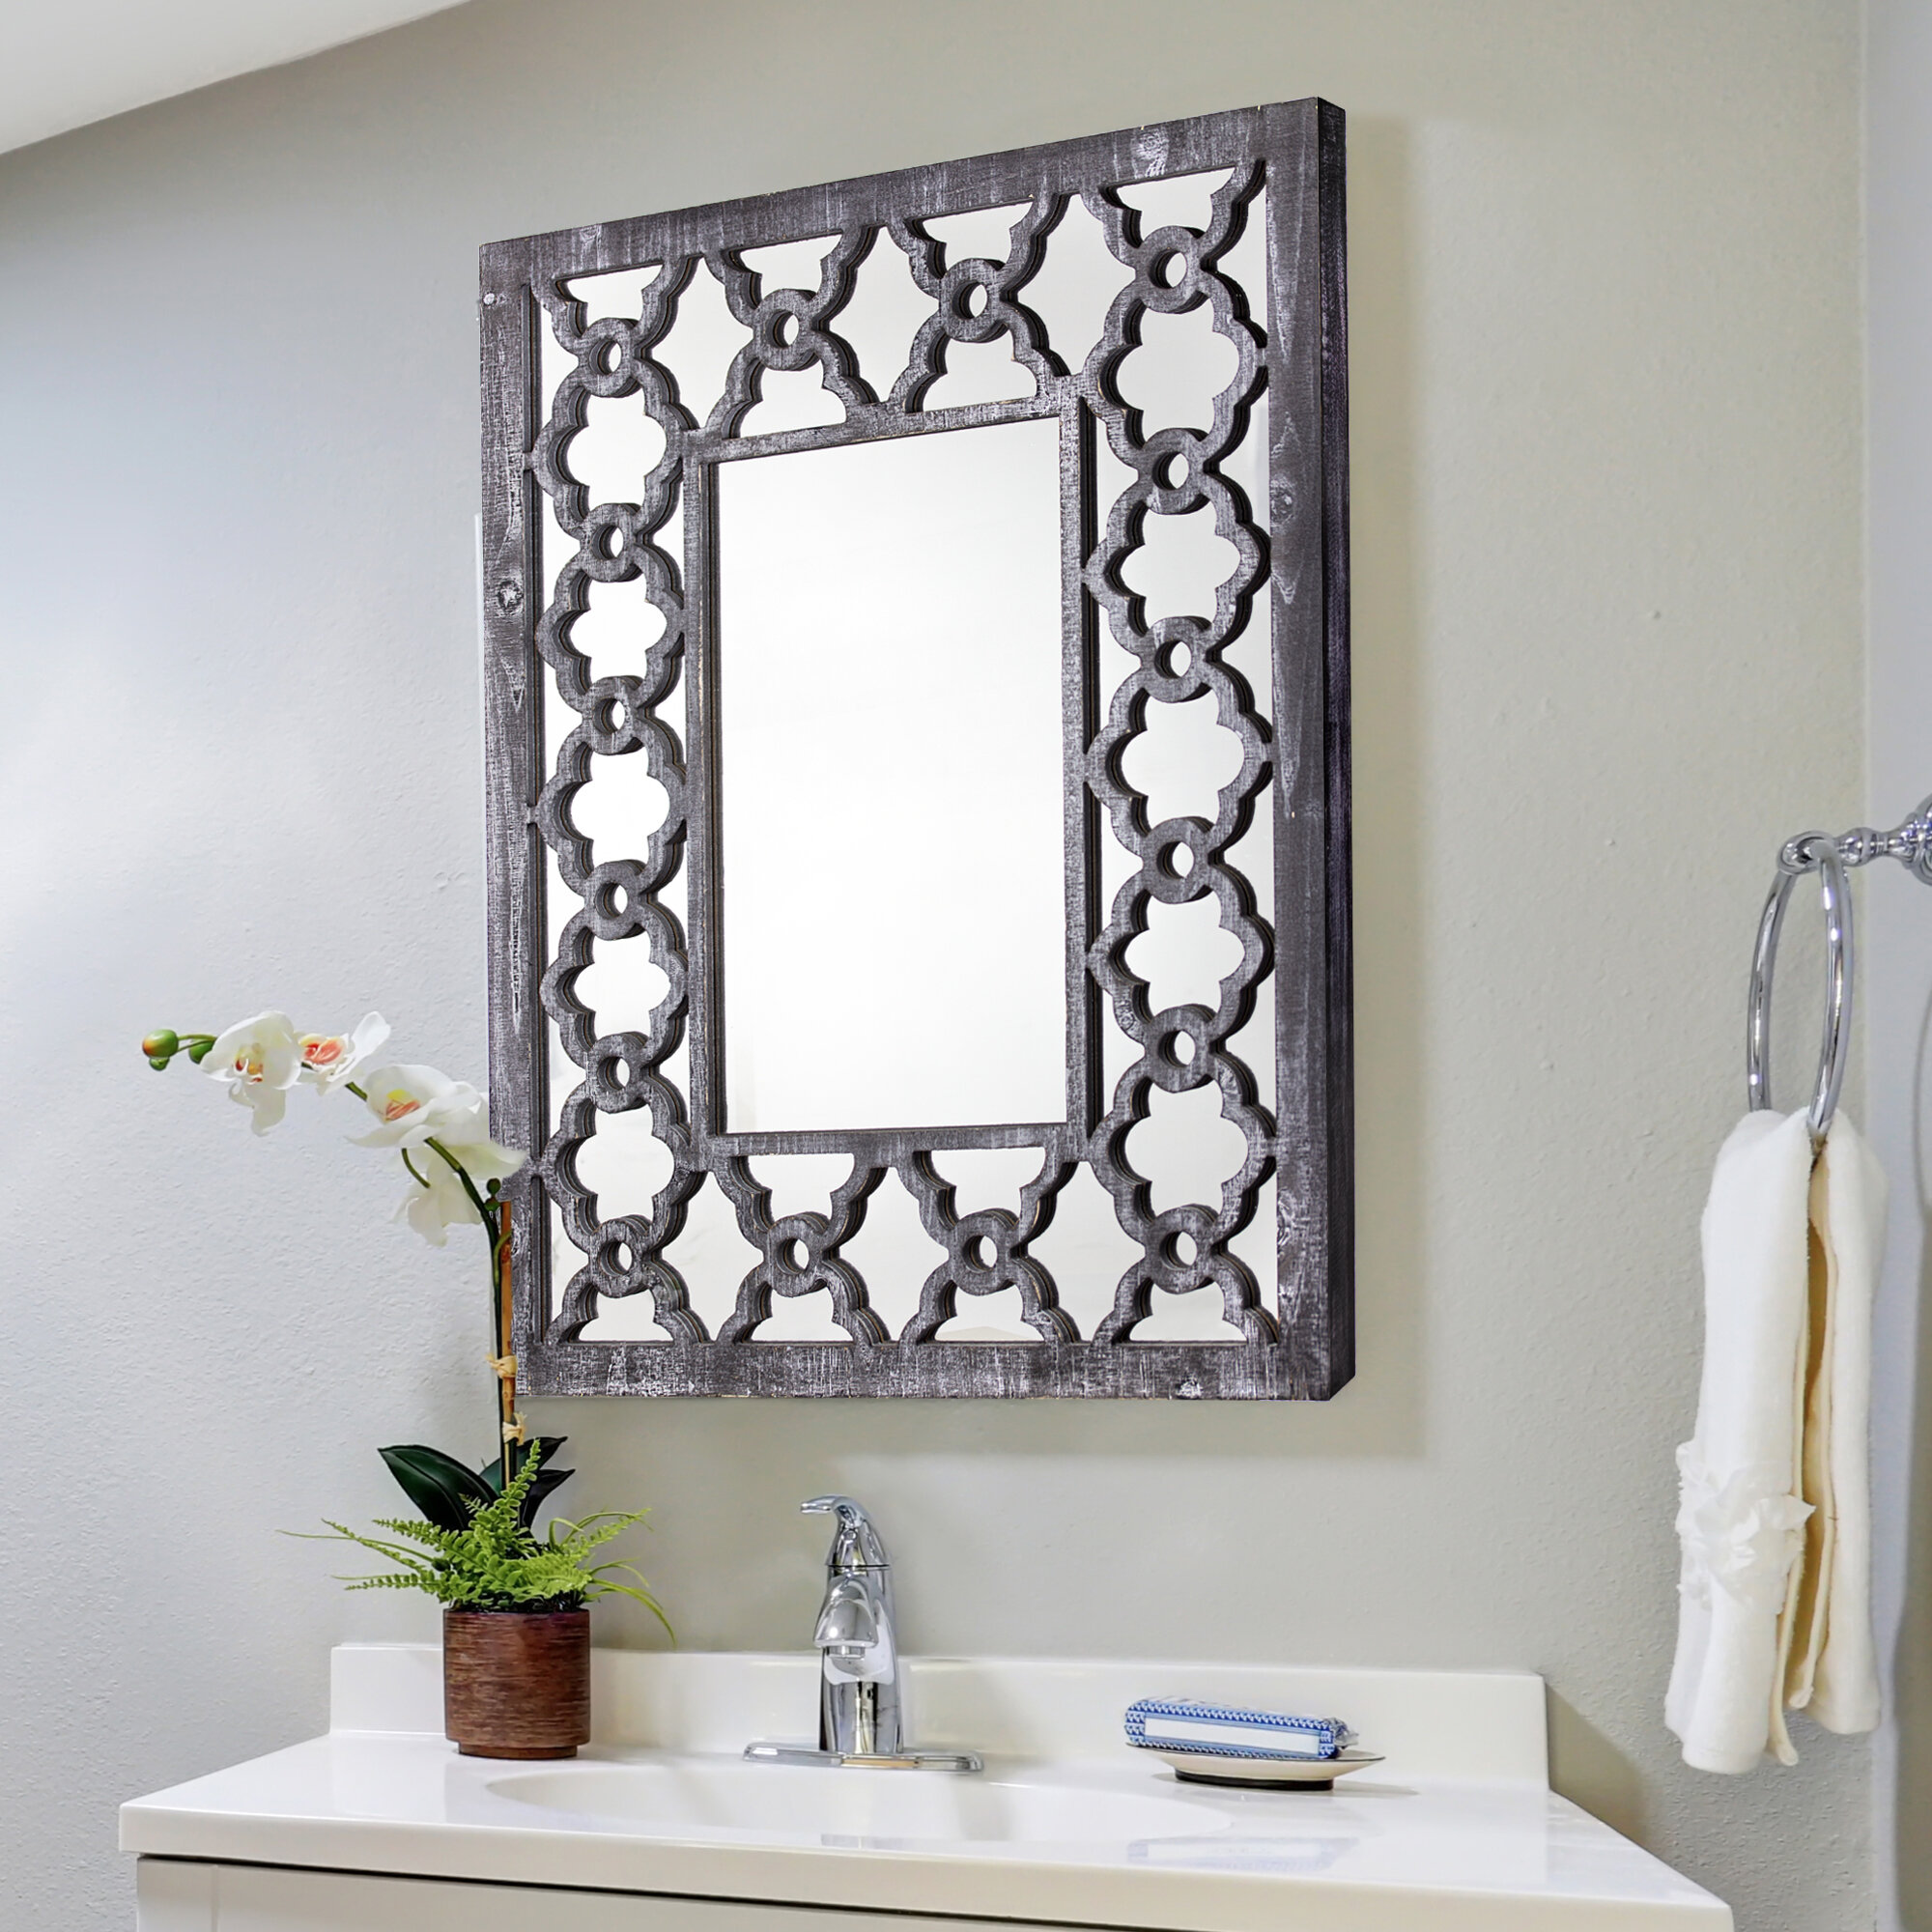 Bathroom Vanity Cottage Country Mirrors Free Shipping Over 35 Wayfair